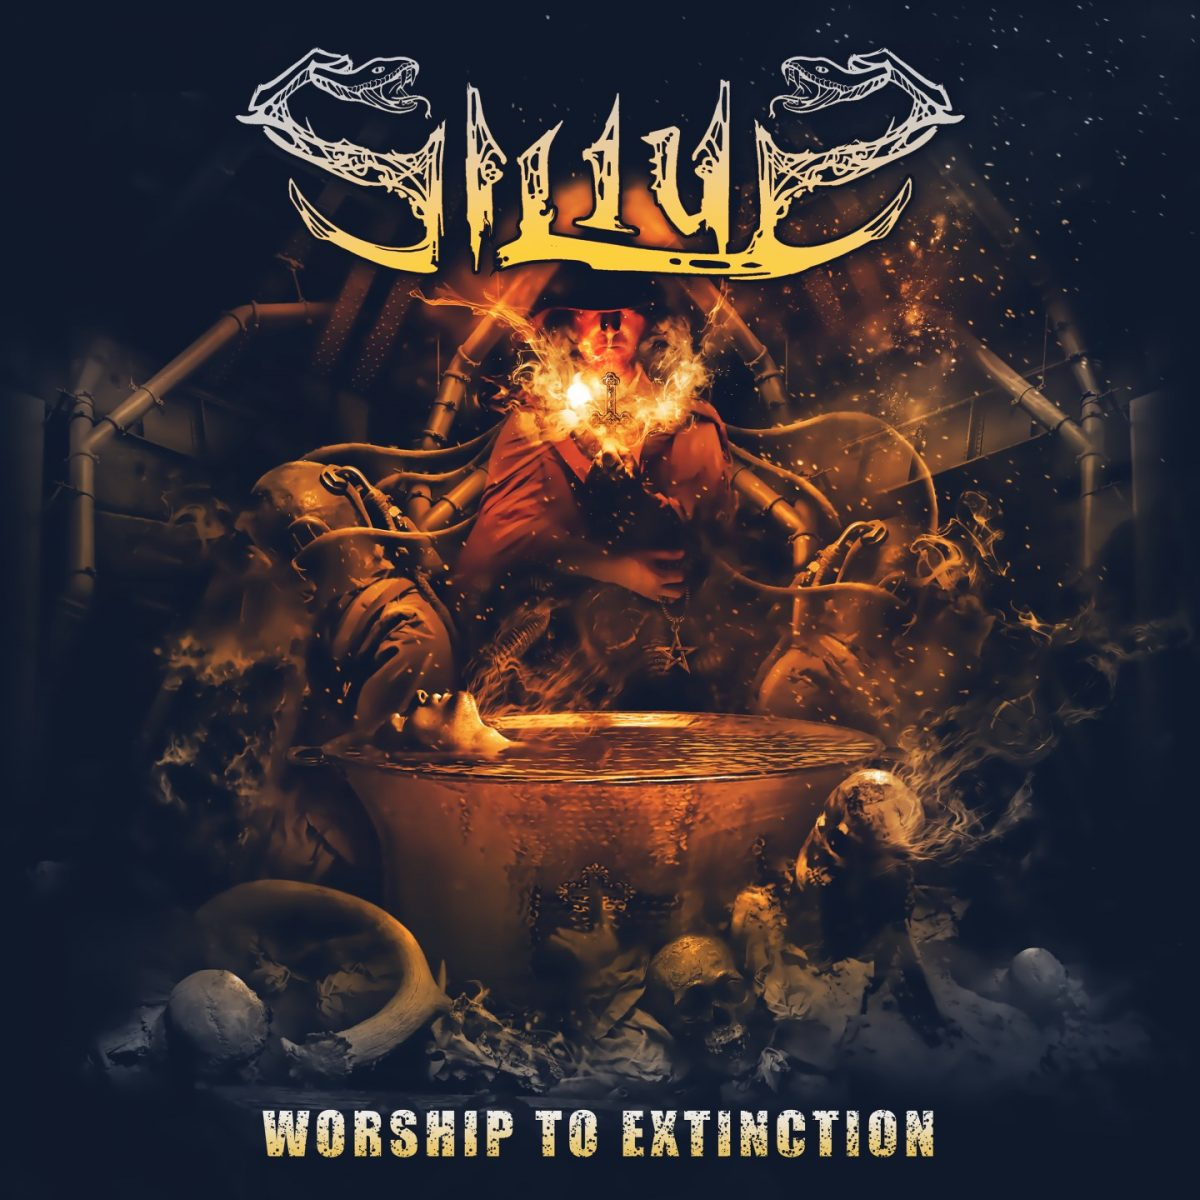 silius-worship-to-extinction-die-besseren-avenged-sevenfold-album-review